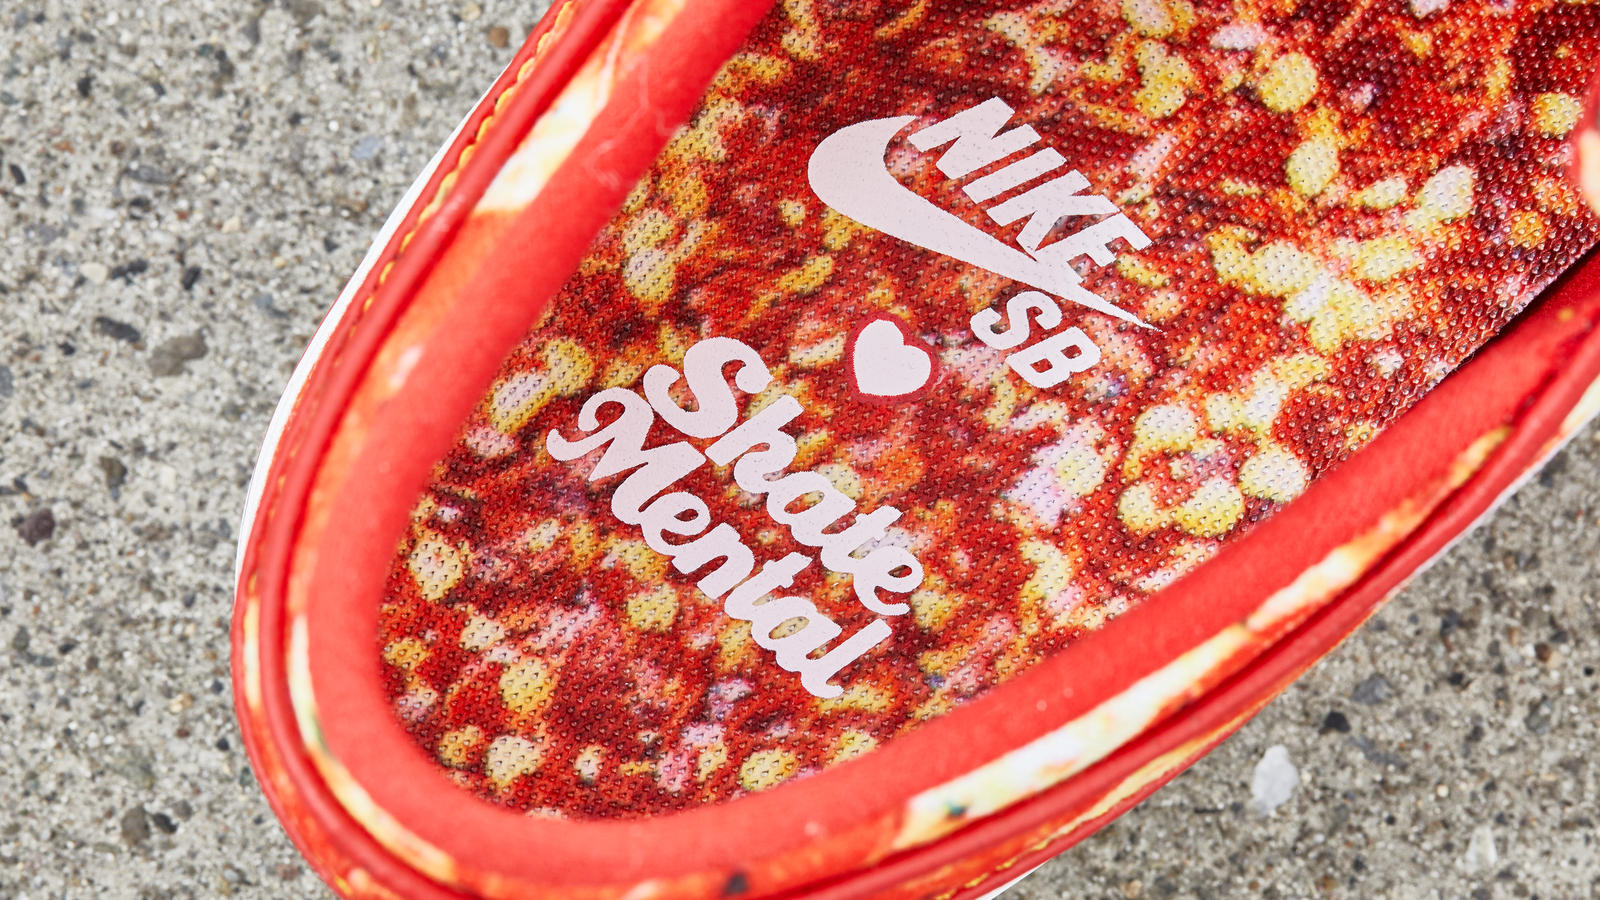 separation shoes 474bb 9199d Like Pizza  How about the Nike SB Zoom Stefan Janoski -6